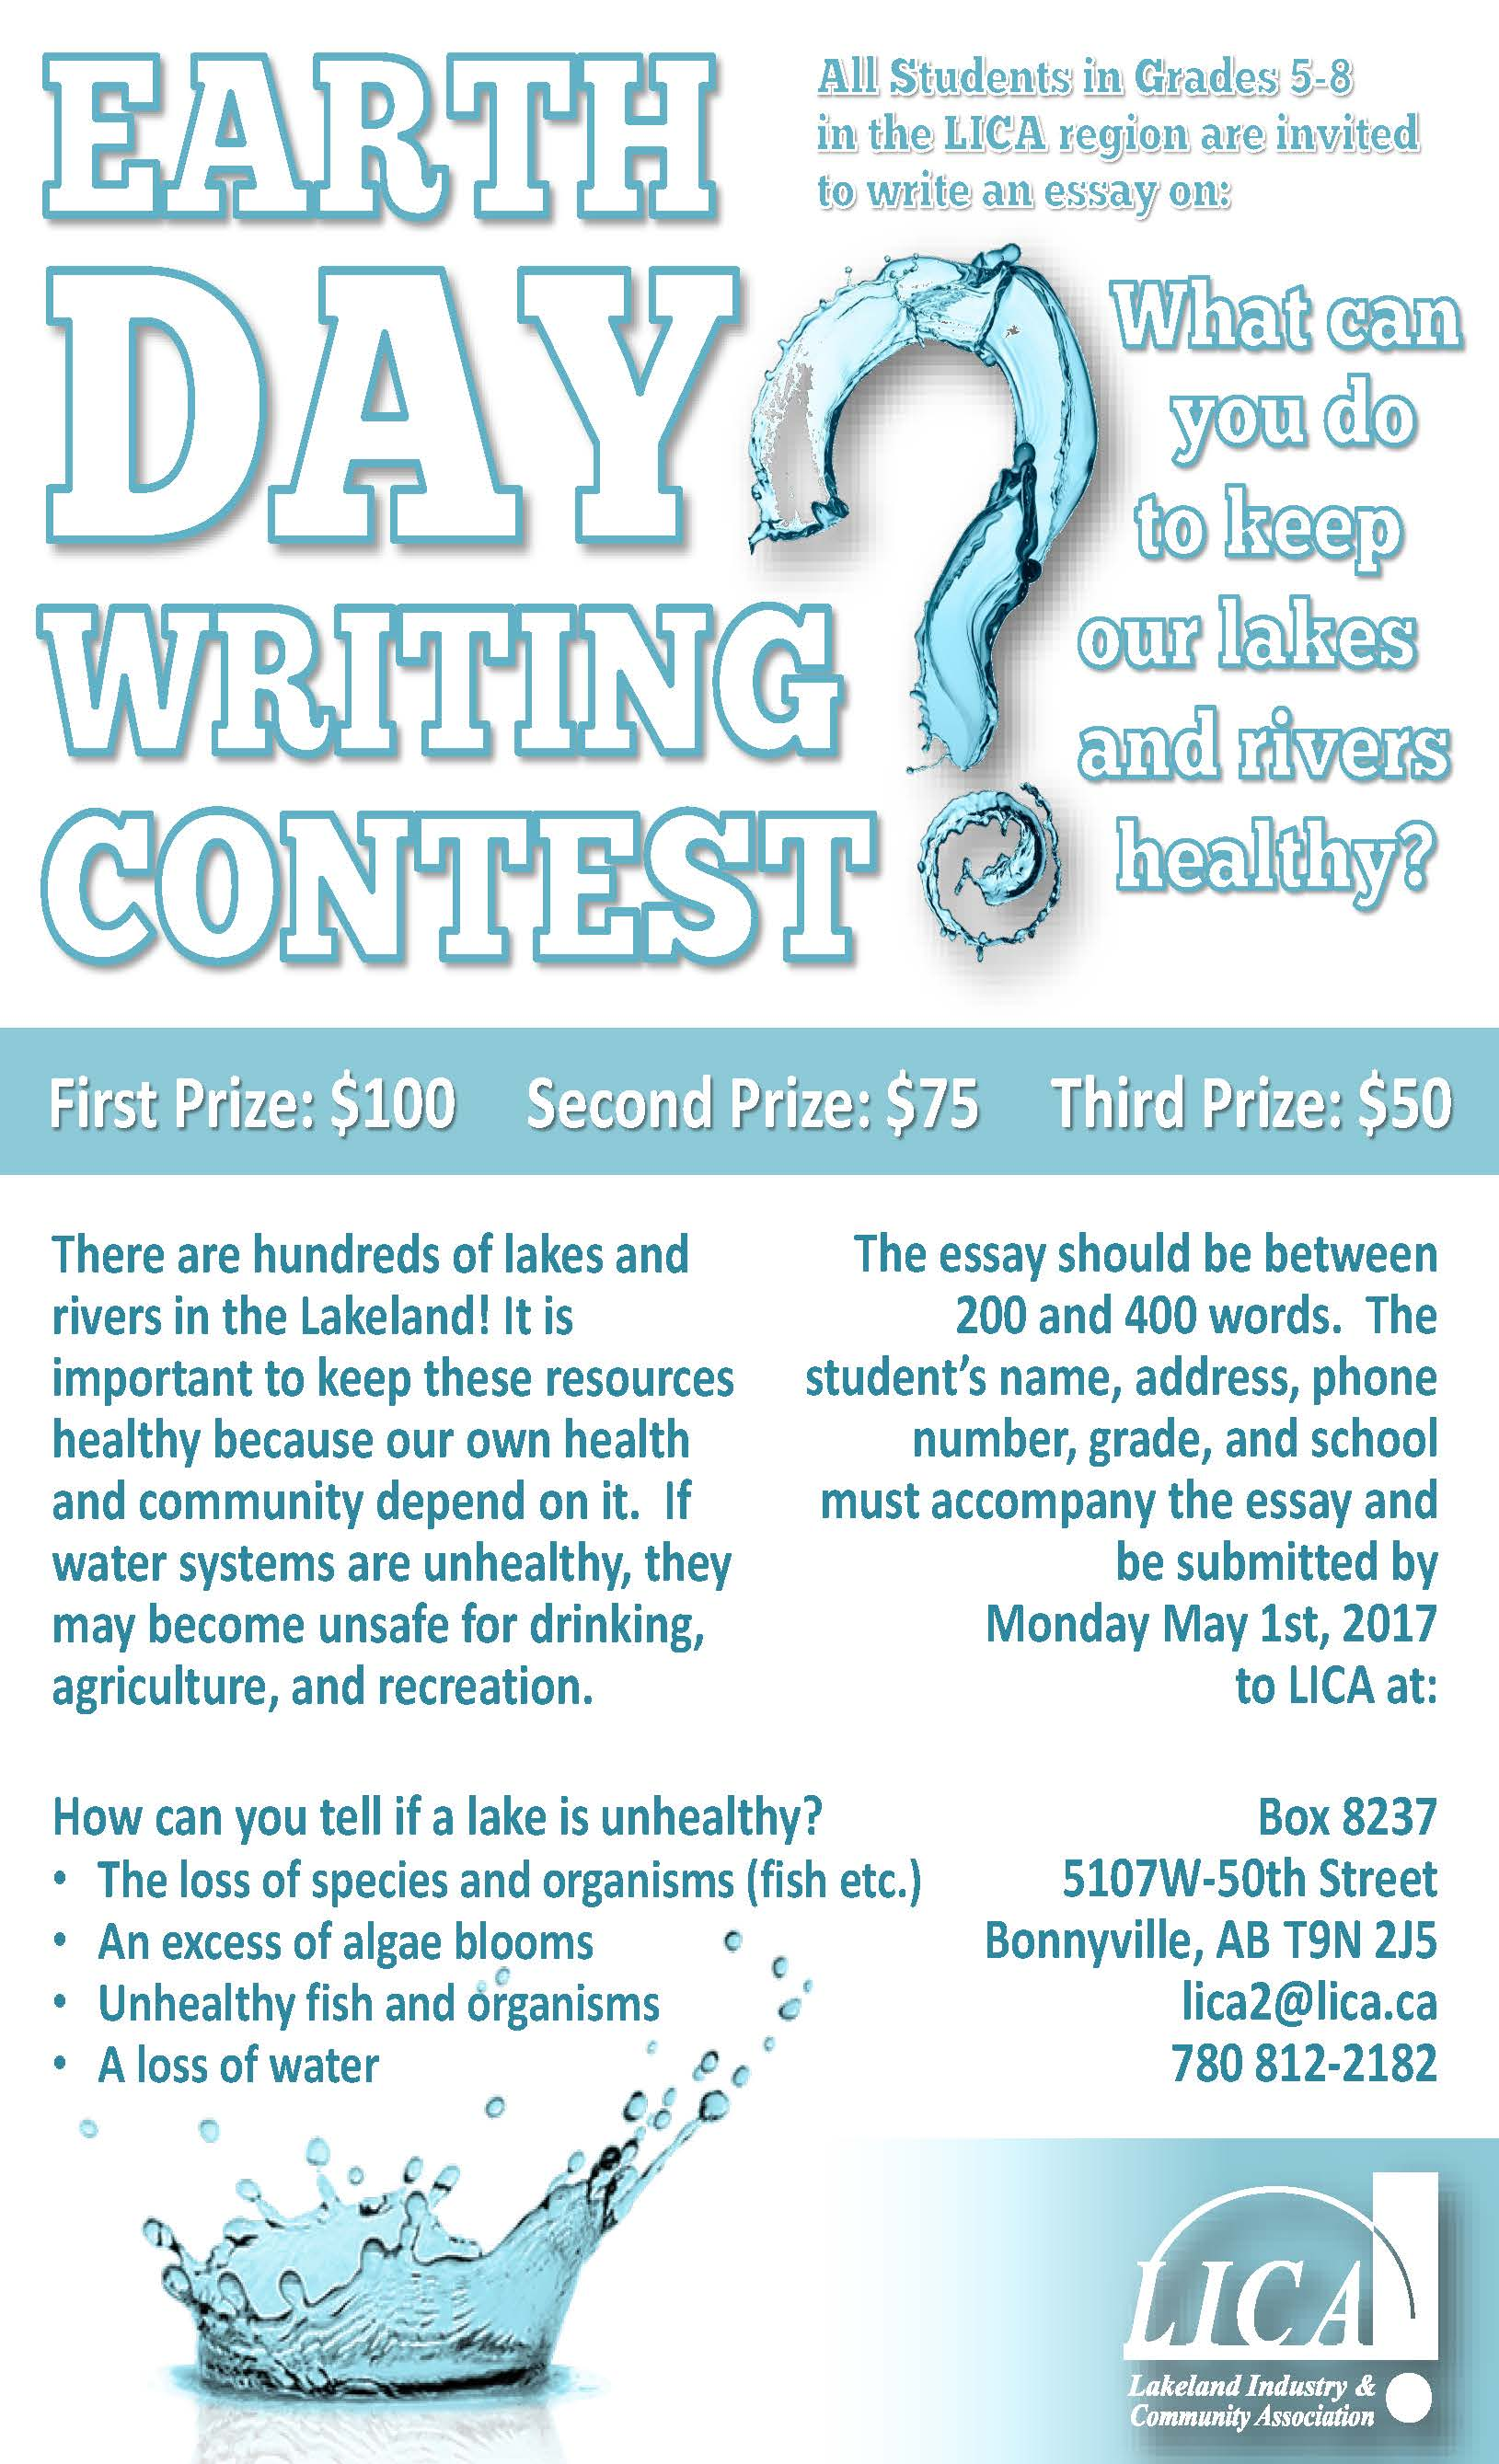 lica s th annual writing contest lcn all students in grades 5 8 in the lica region are invited to write an essay on